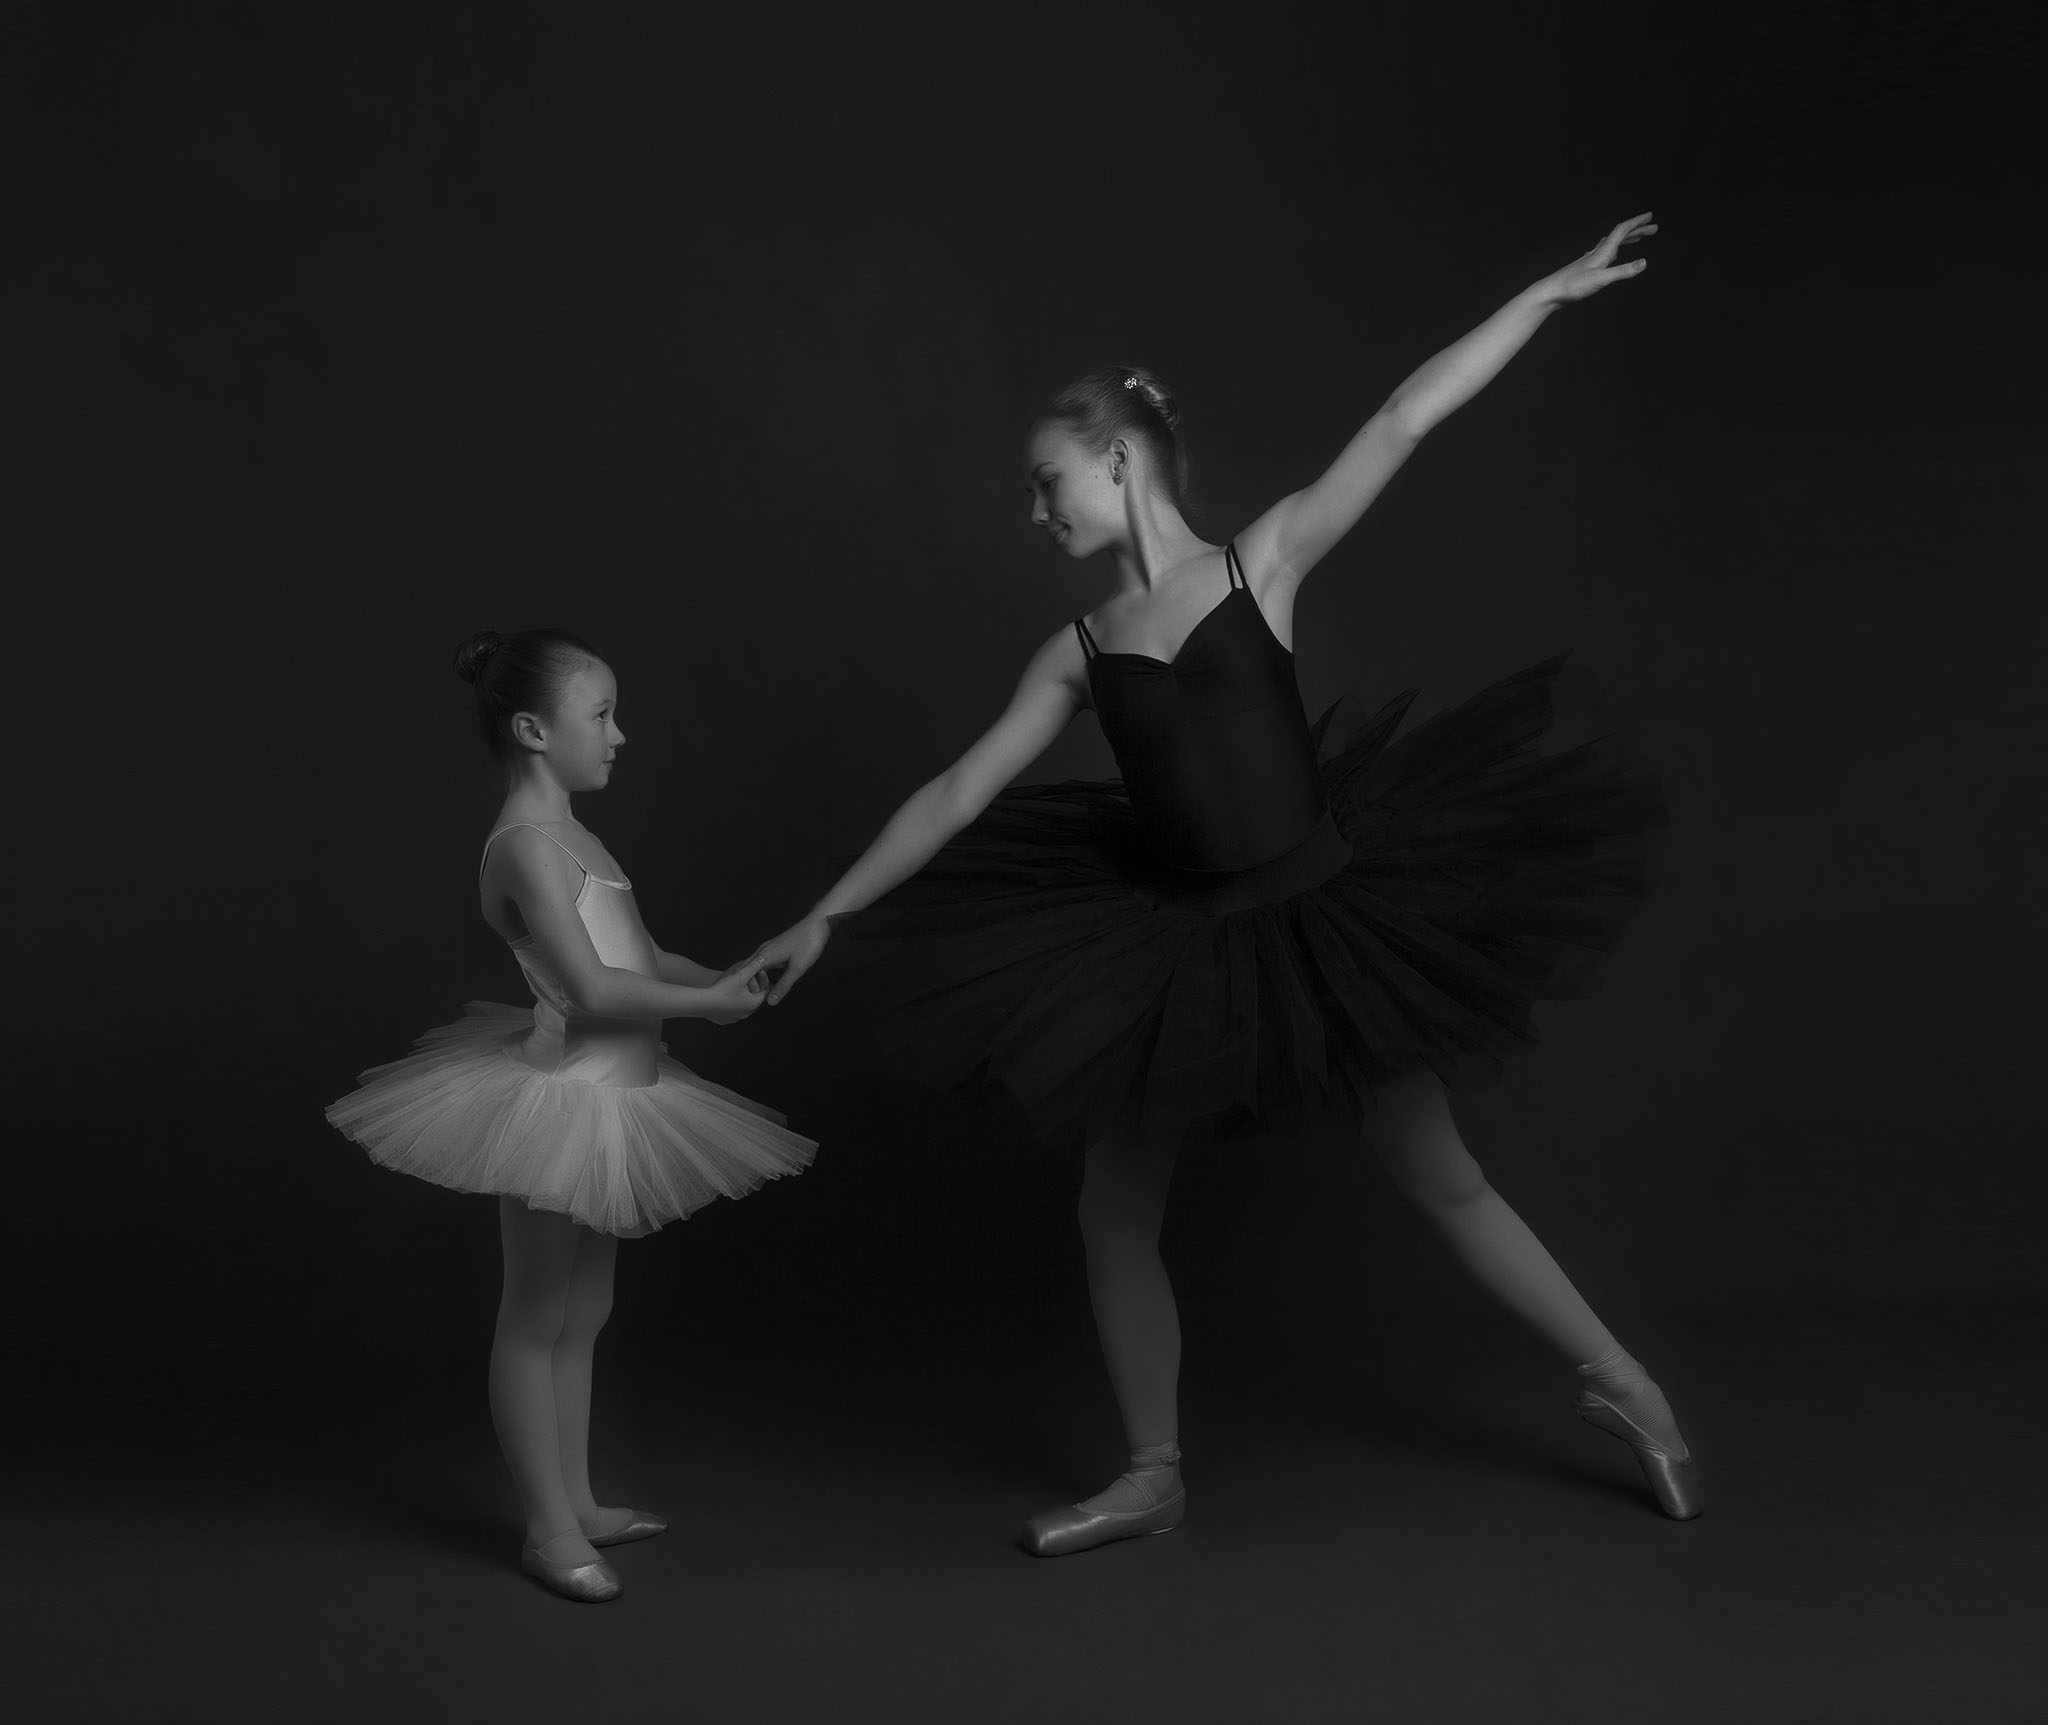 elizabethgphotography_kingslangley_hertfordshire_fineart_dance_photography_38.jpg